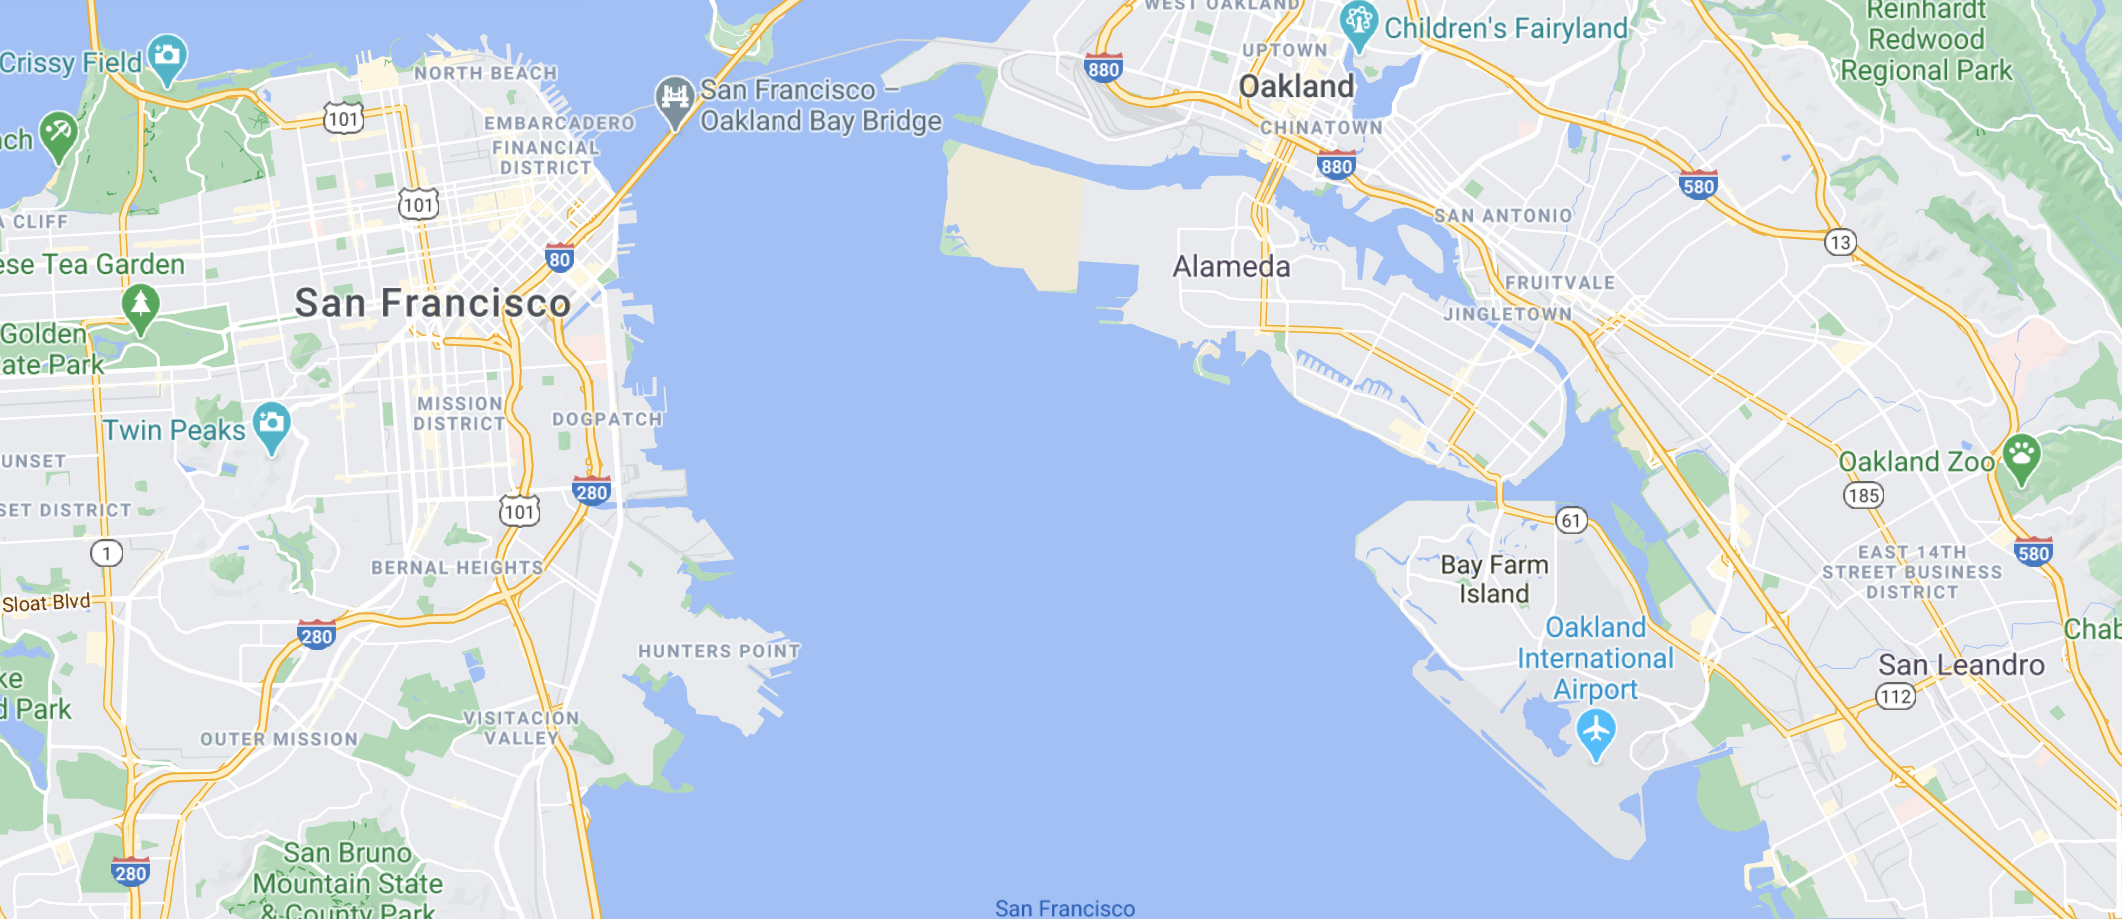 Airport of Oakland Location Map